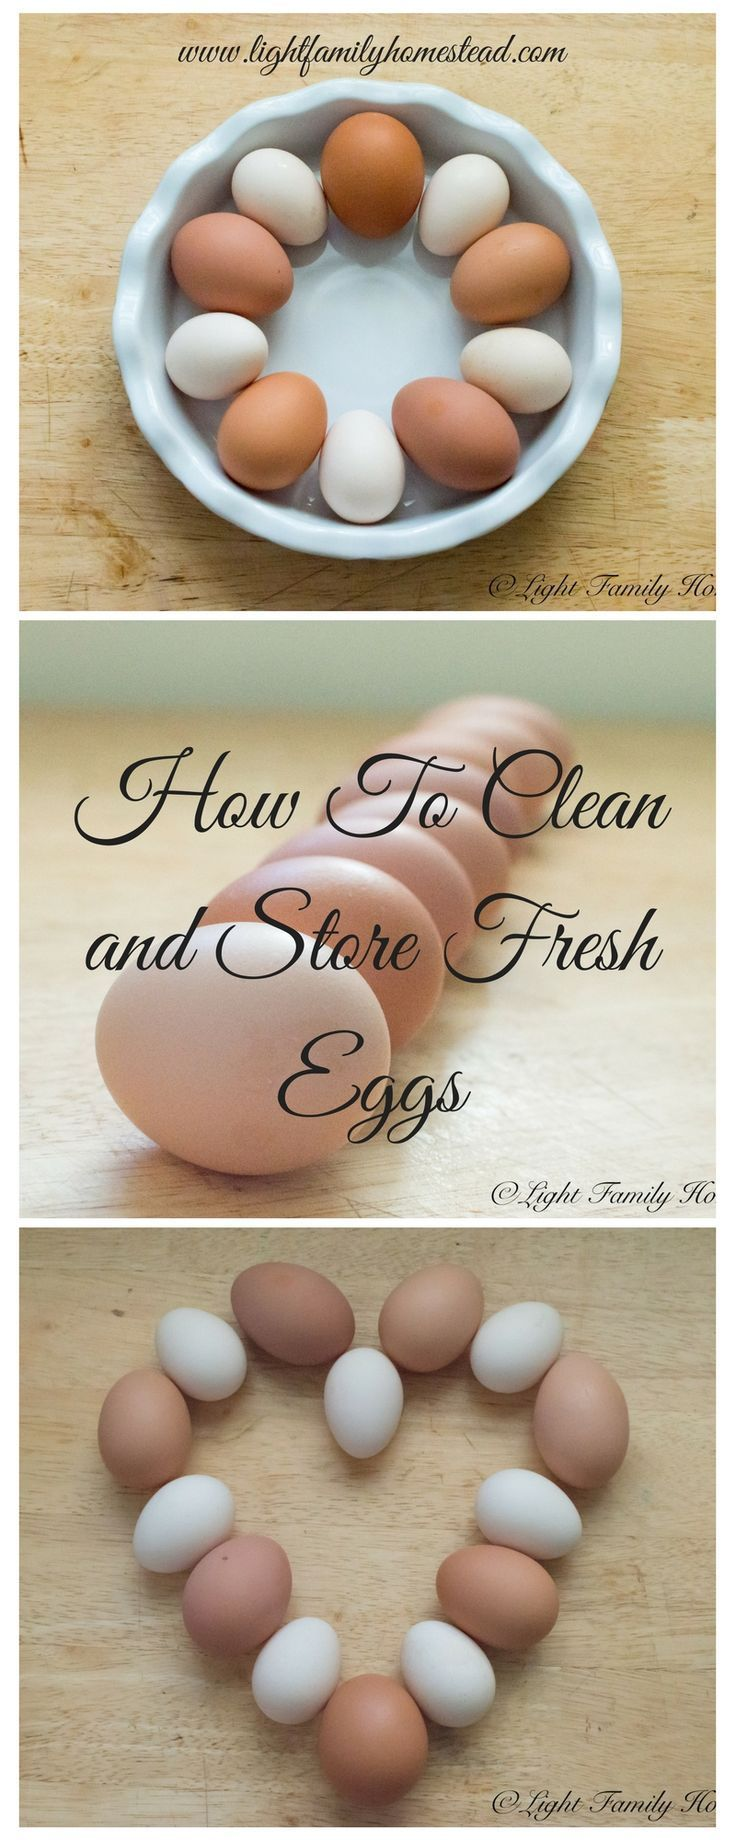 how to properly clean chicken livers